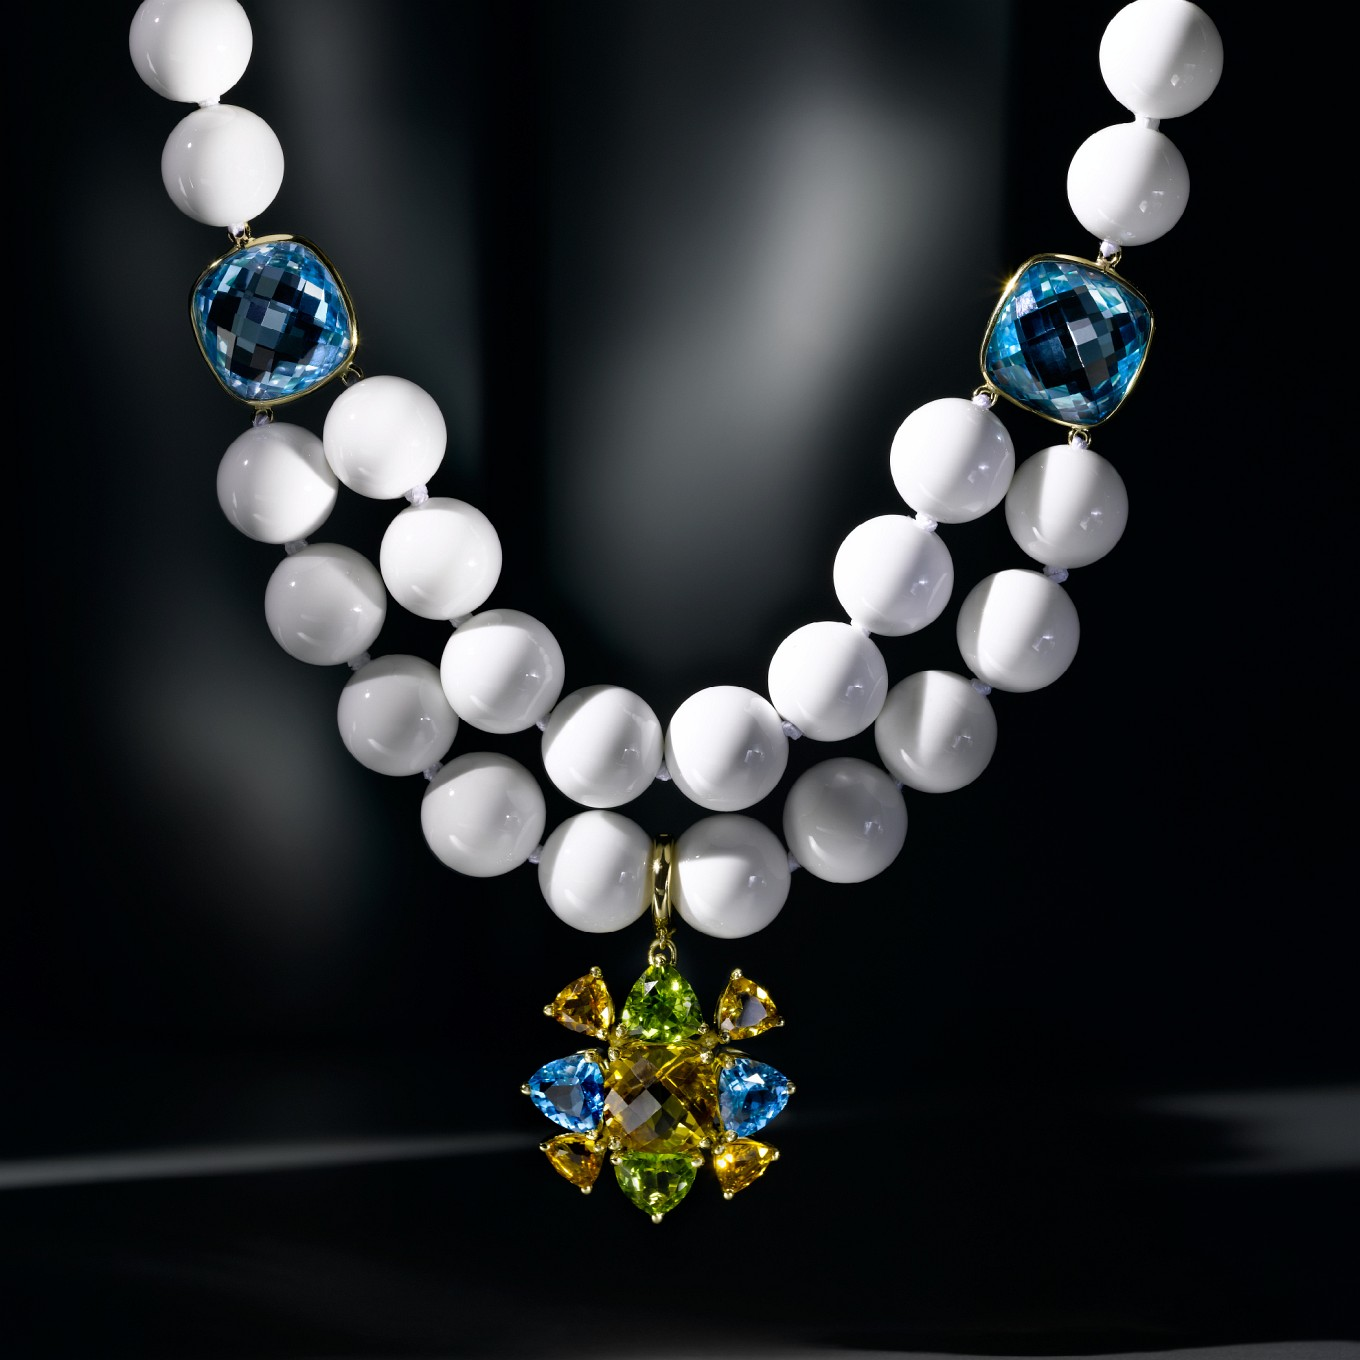 WHITE AGATE & BLUE TOPAZ NECKLACE IN YELLOW GOLD WITH DETACHABLE CITRINE, PERIDOT & BLUE TOPAZ PENDANT IN YELLOW GOLD